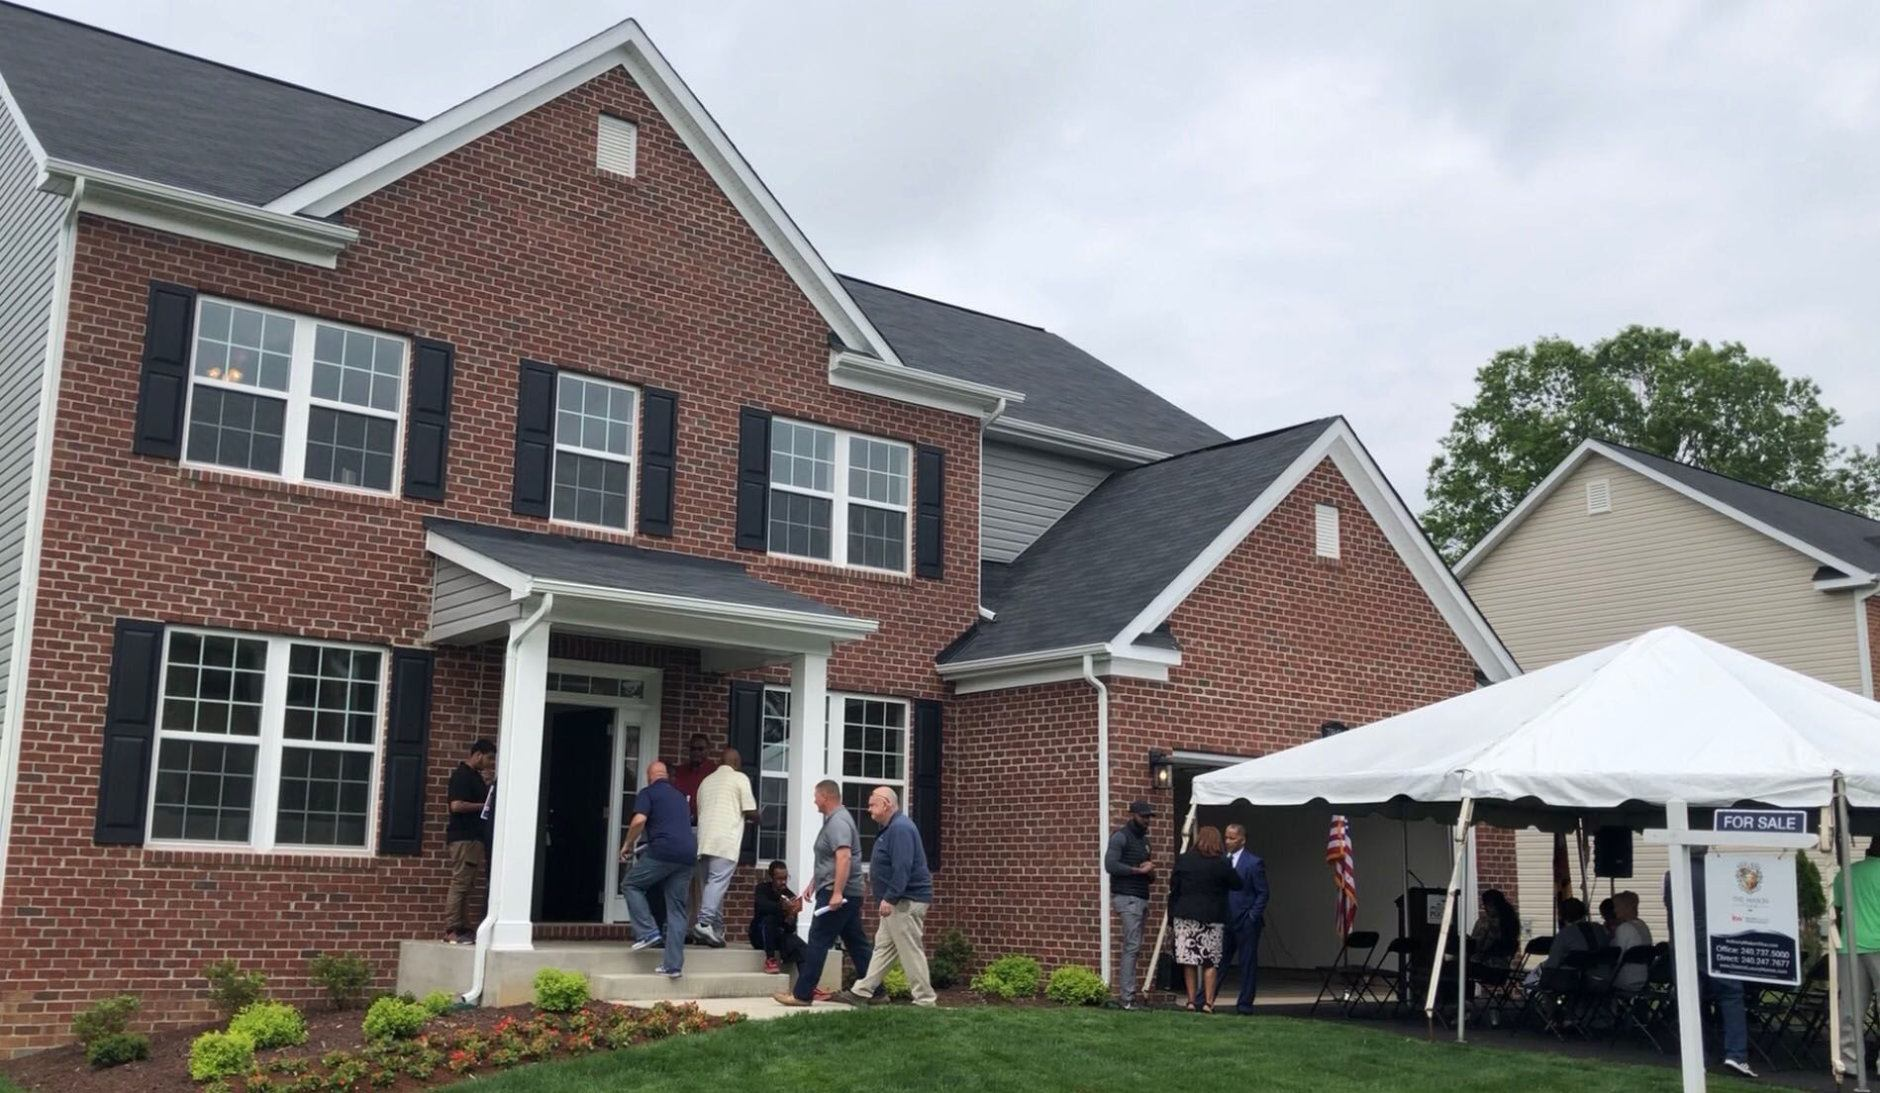 The 5,000-square-foot home at 7804 Lusby's Turn in Brandywine was built entirely by students. (WTOP/Kristi King)